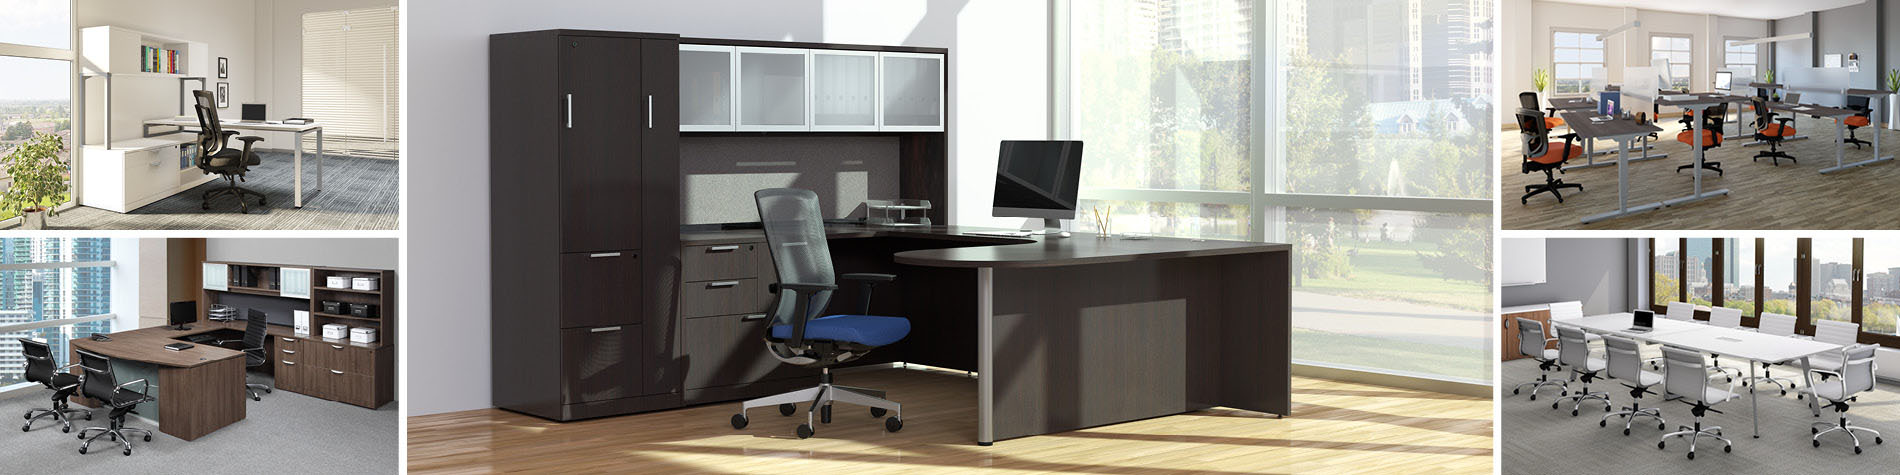 performance office furnishings achieve more view collections